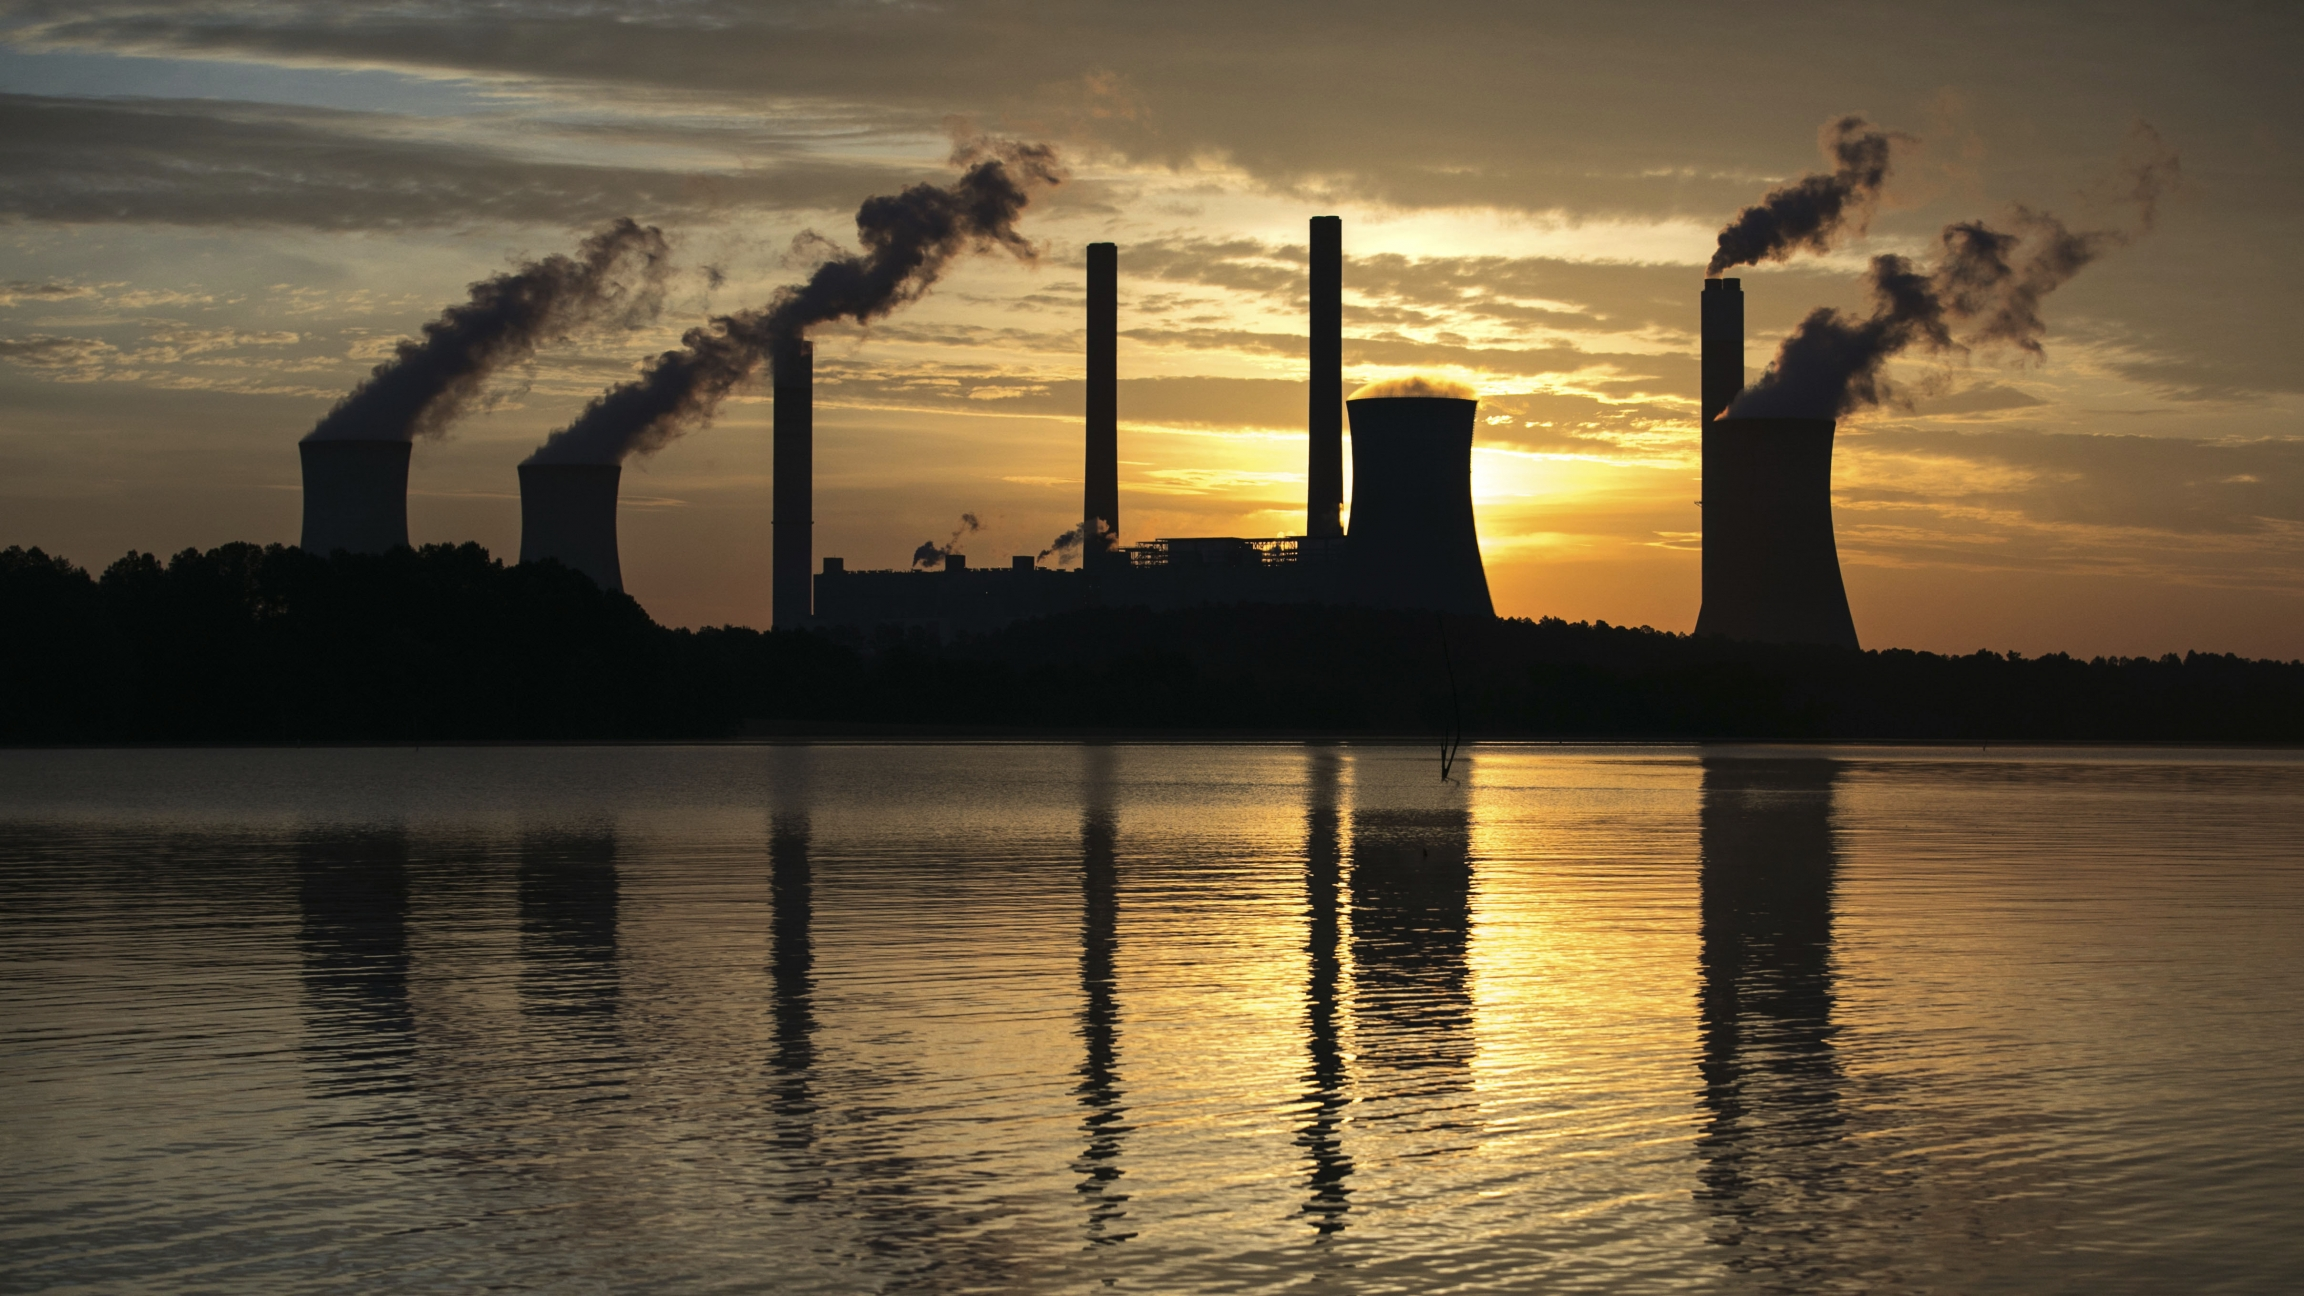 Smoke billows from stacks against a setting sun.